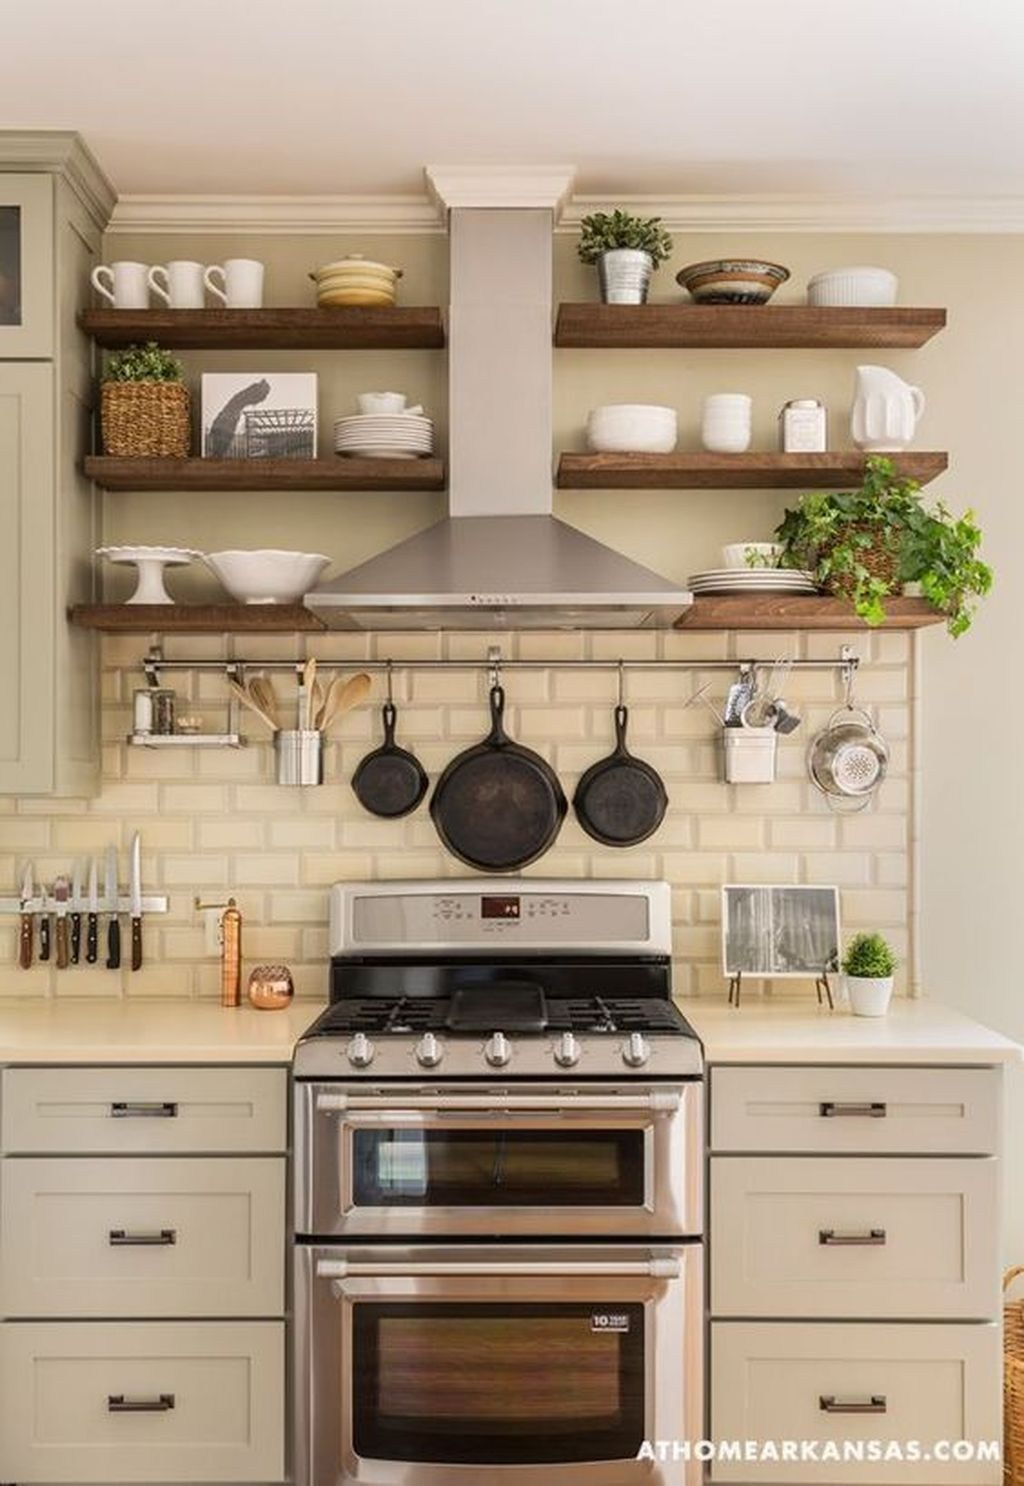 Wonderful Custom Design Ideas For Your Kitchen Cabinets Island With Images Kitchen Remodel Small Kitchen Design Rustic Farmhouse Kitchen